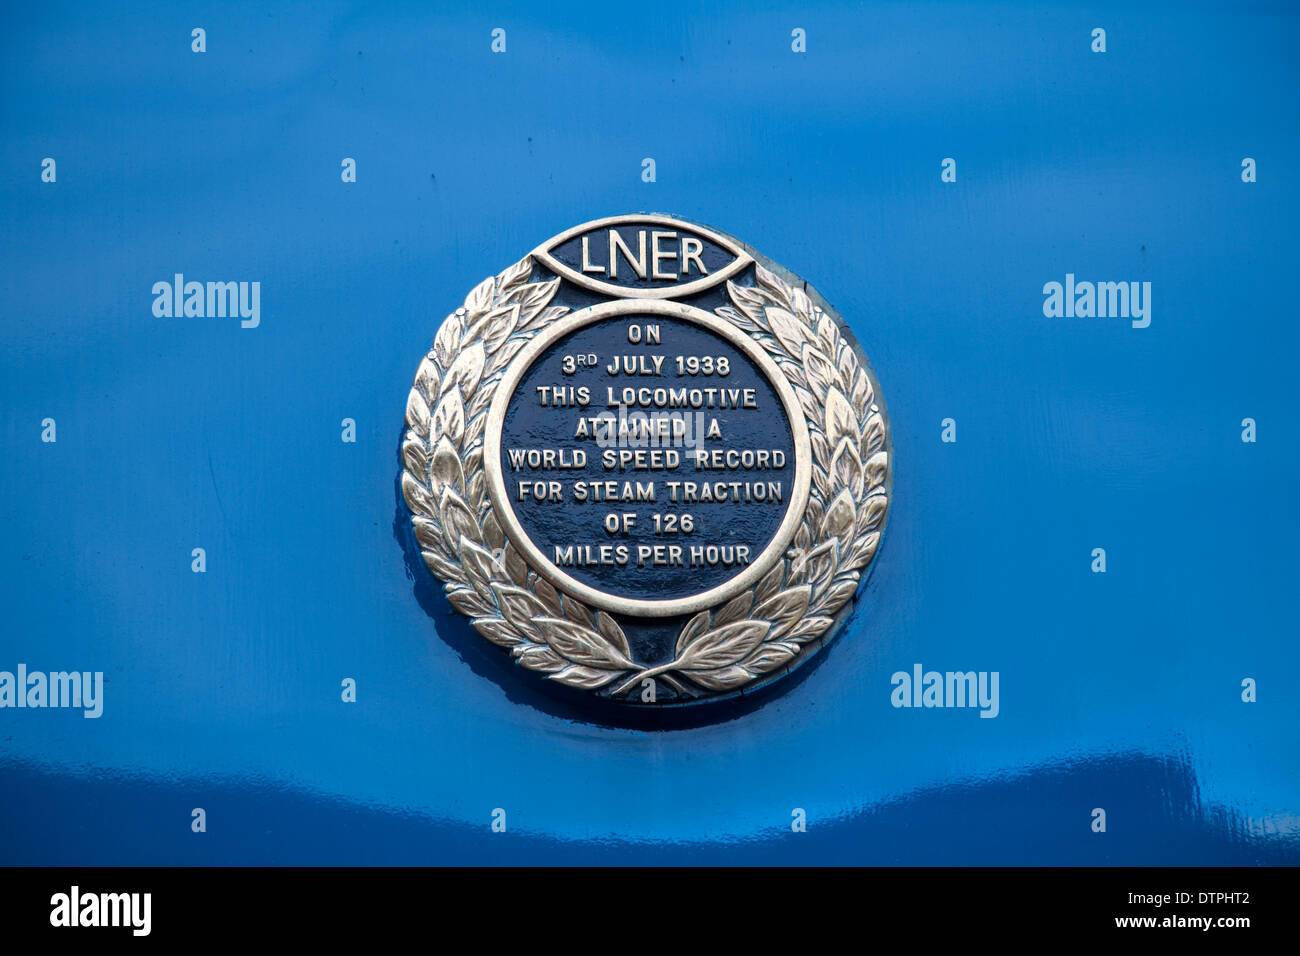 Badge commemorating the World Speed Record for steam traction, as achieved by the 'Mallard' Class A4 steam locomotive in 1938. - Stock Image